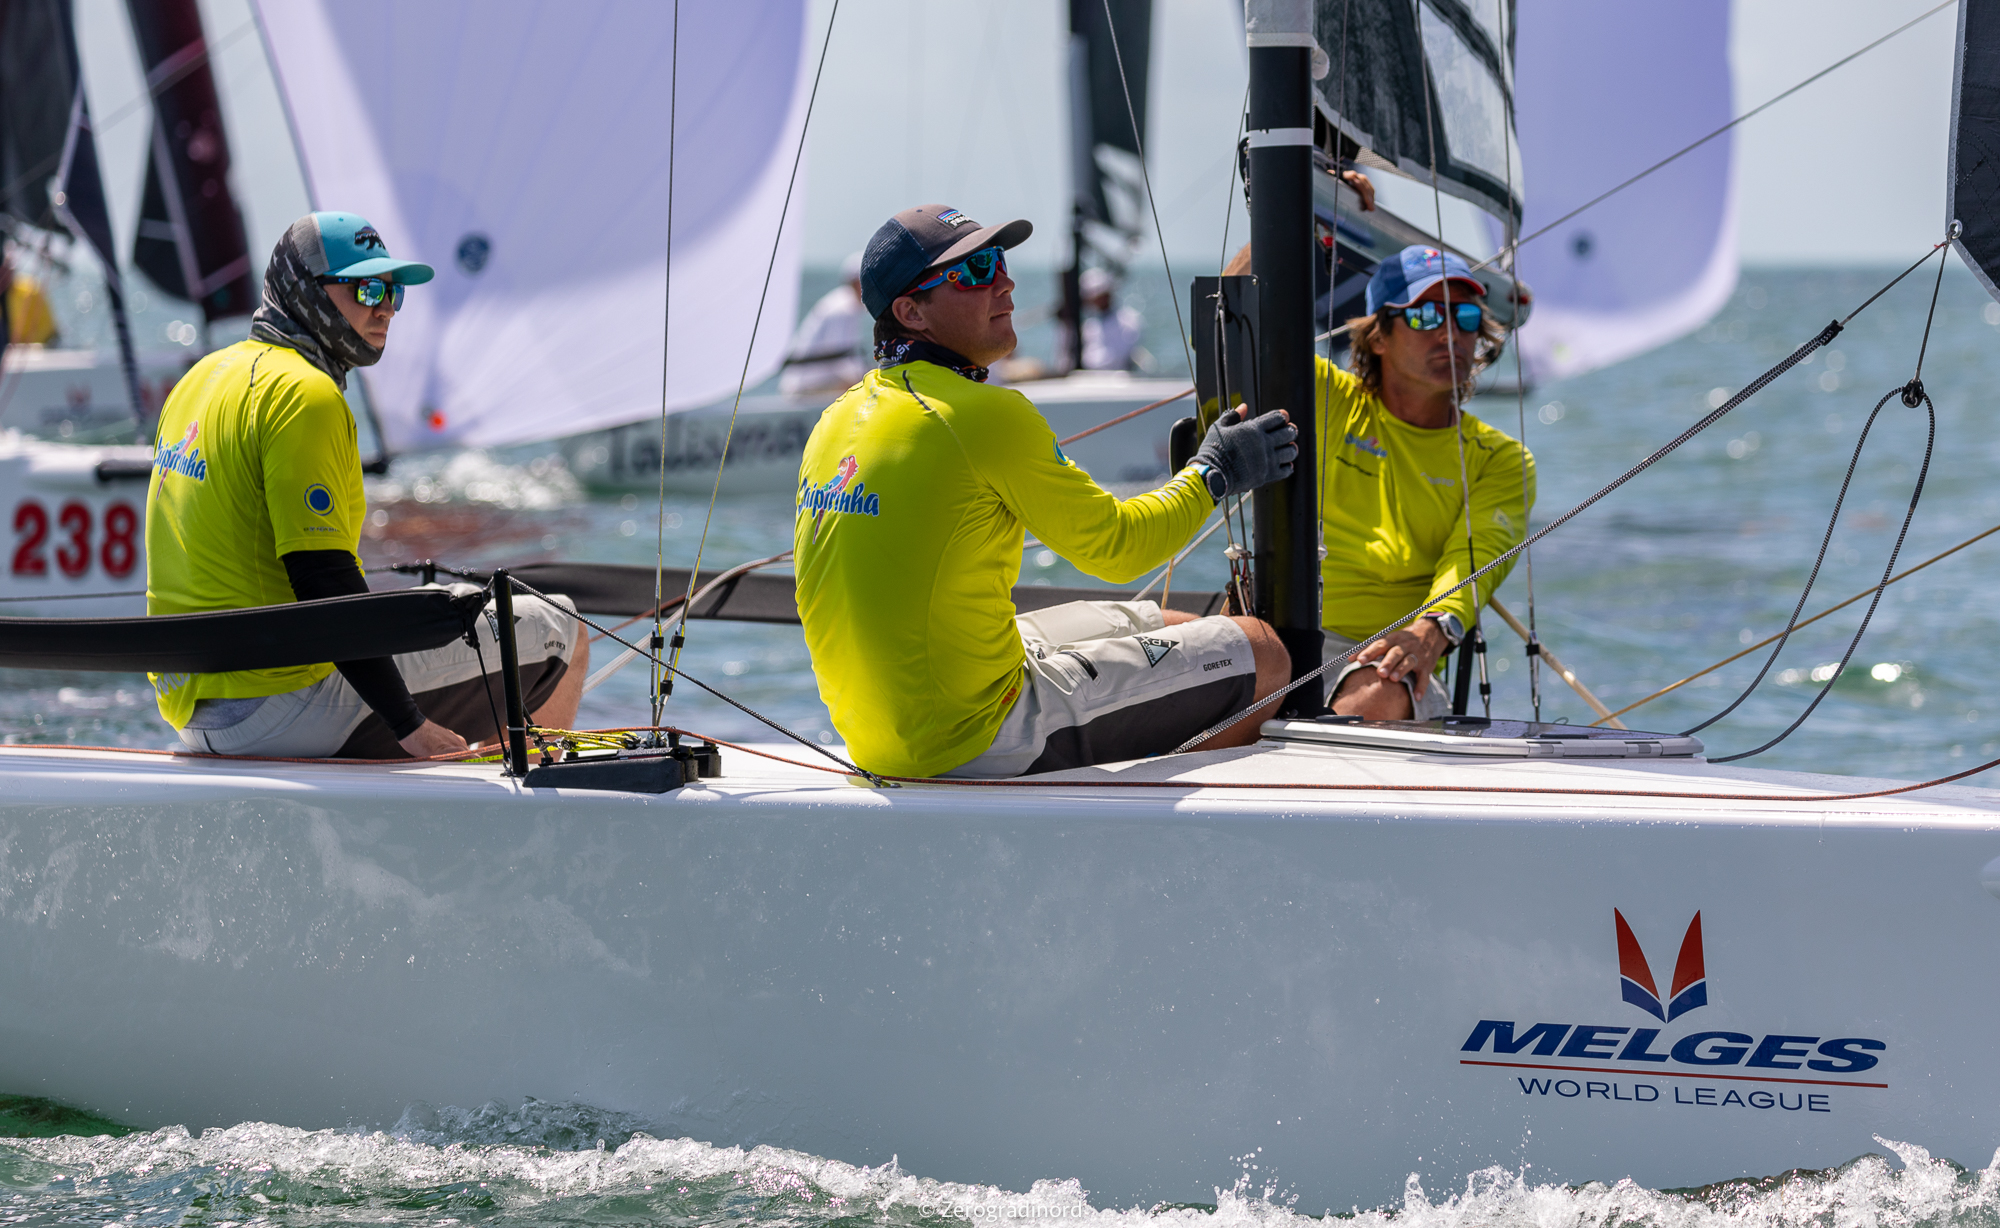 Melges20_060419_low-30.jpg